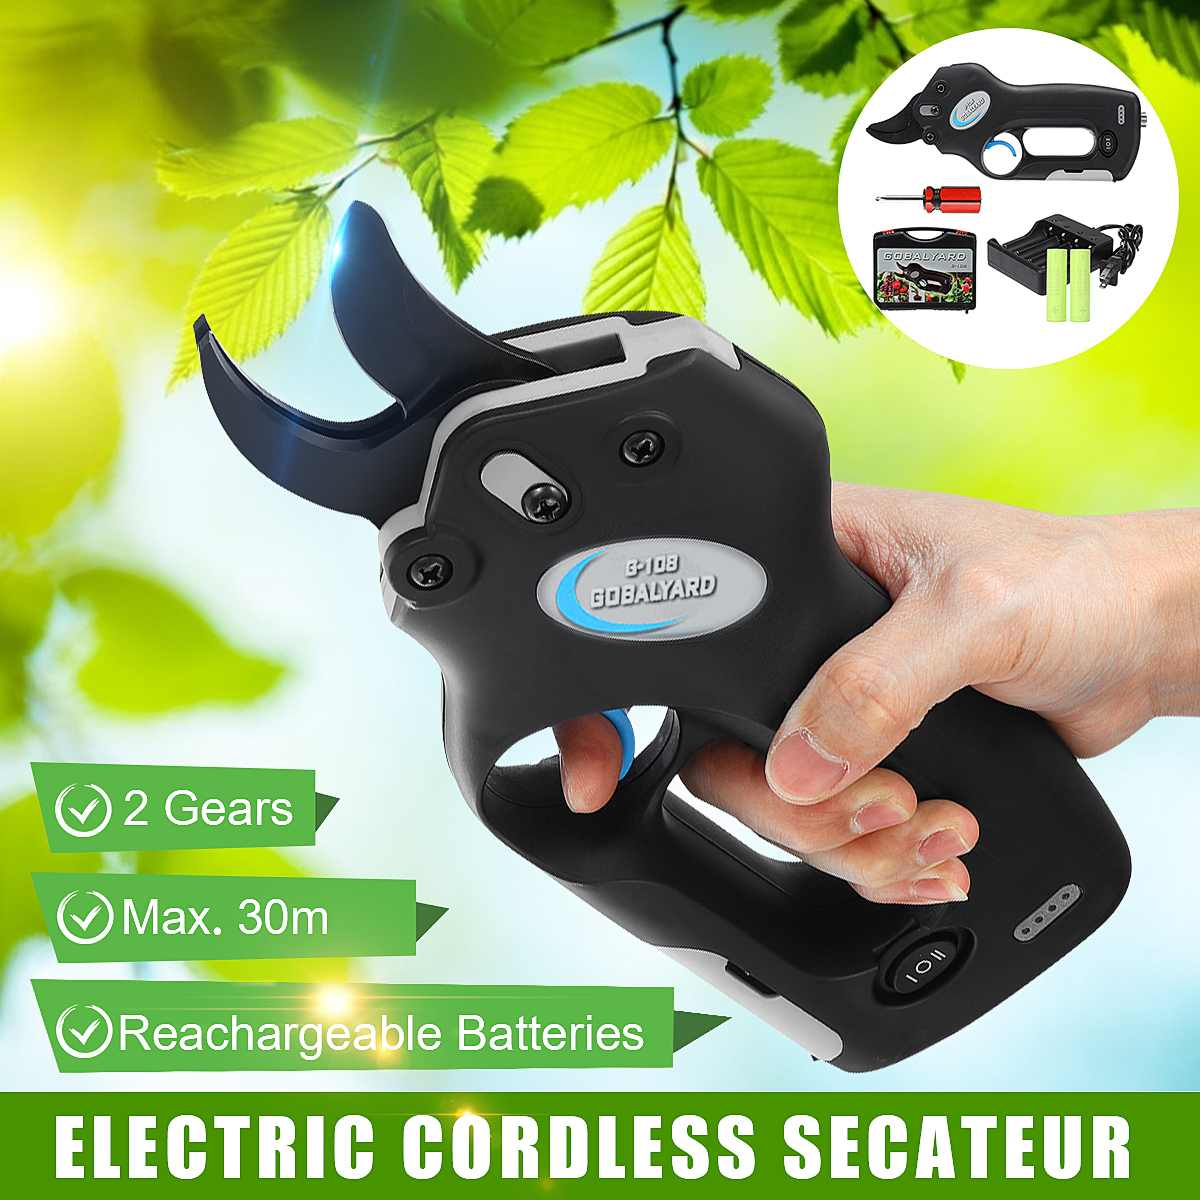 Cordless Electric Branch Cutter Rechargeable Pruning Shears Secateur Branch Cutter Electric Fruit Pruning Tool Garden Pruner